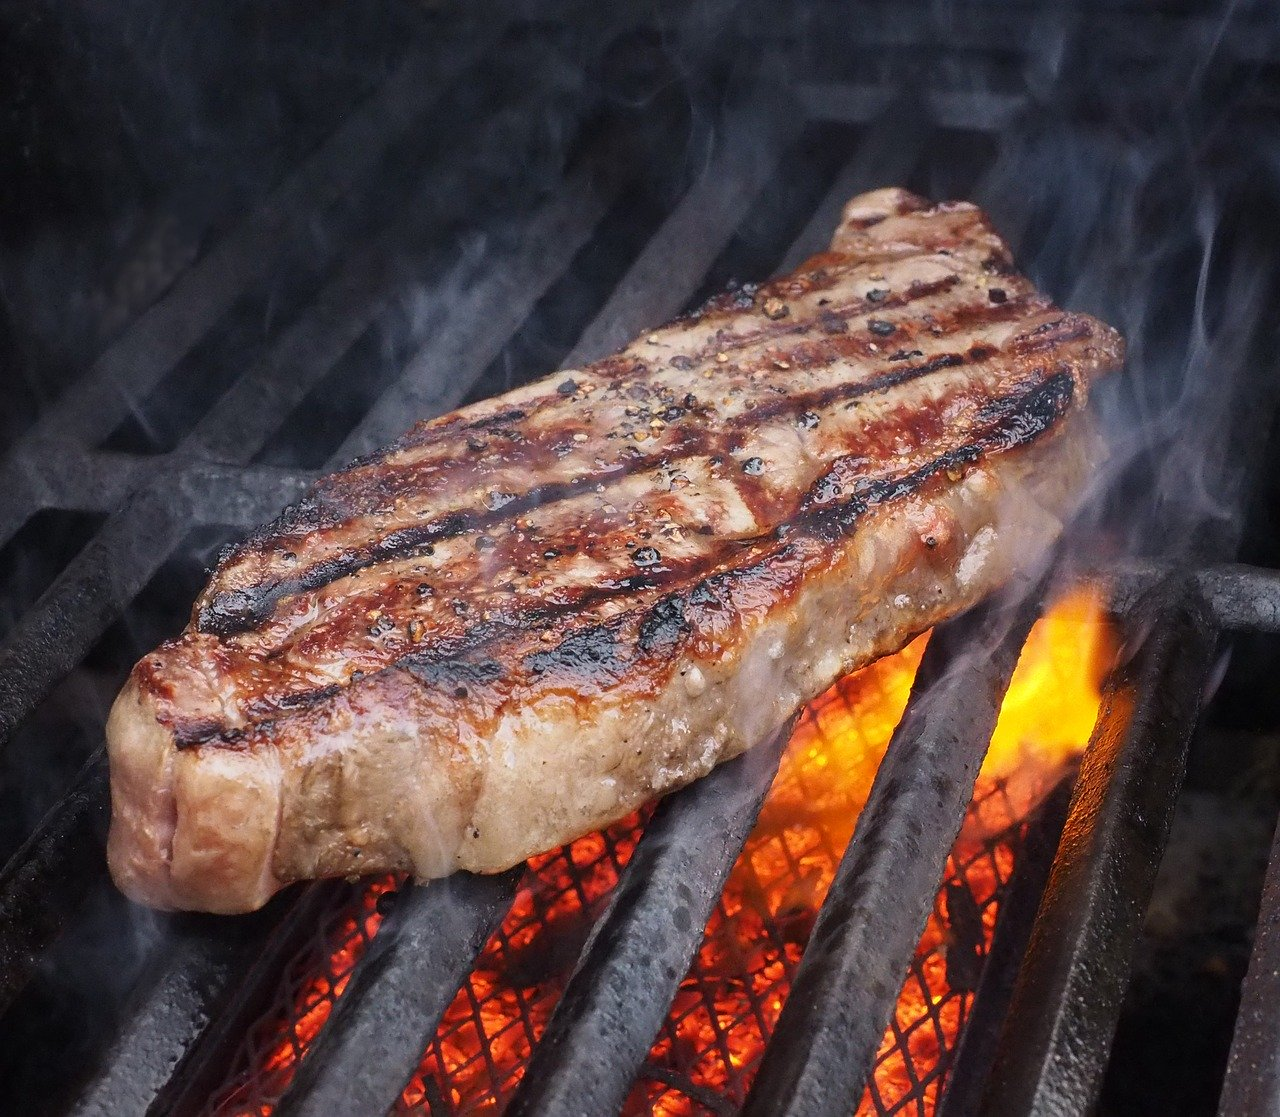 How to get Perfectly Grilled Meat